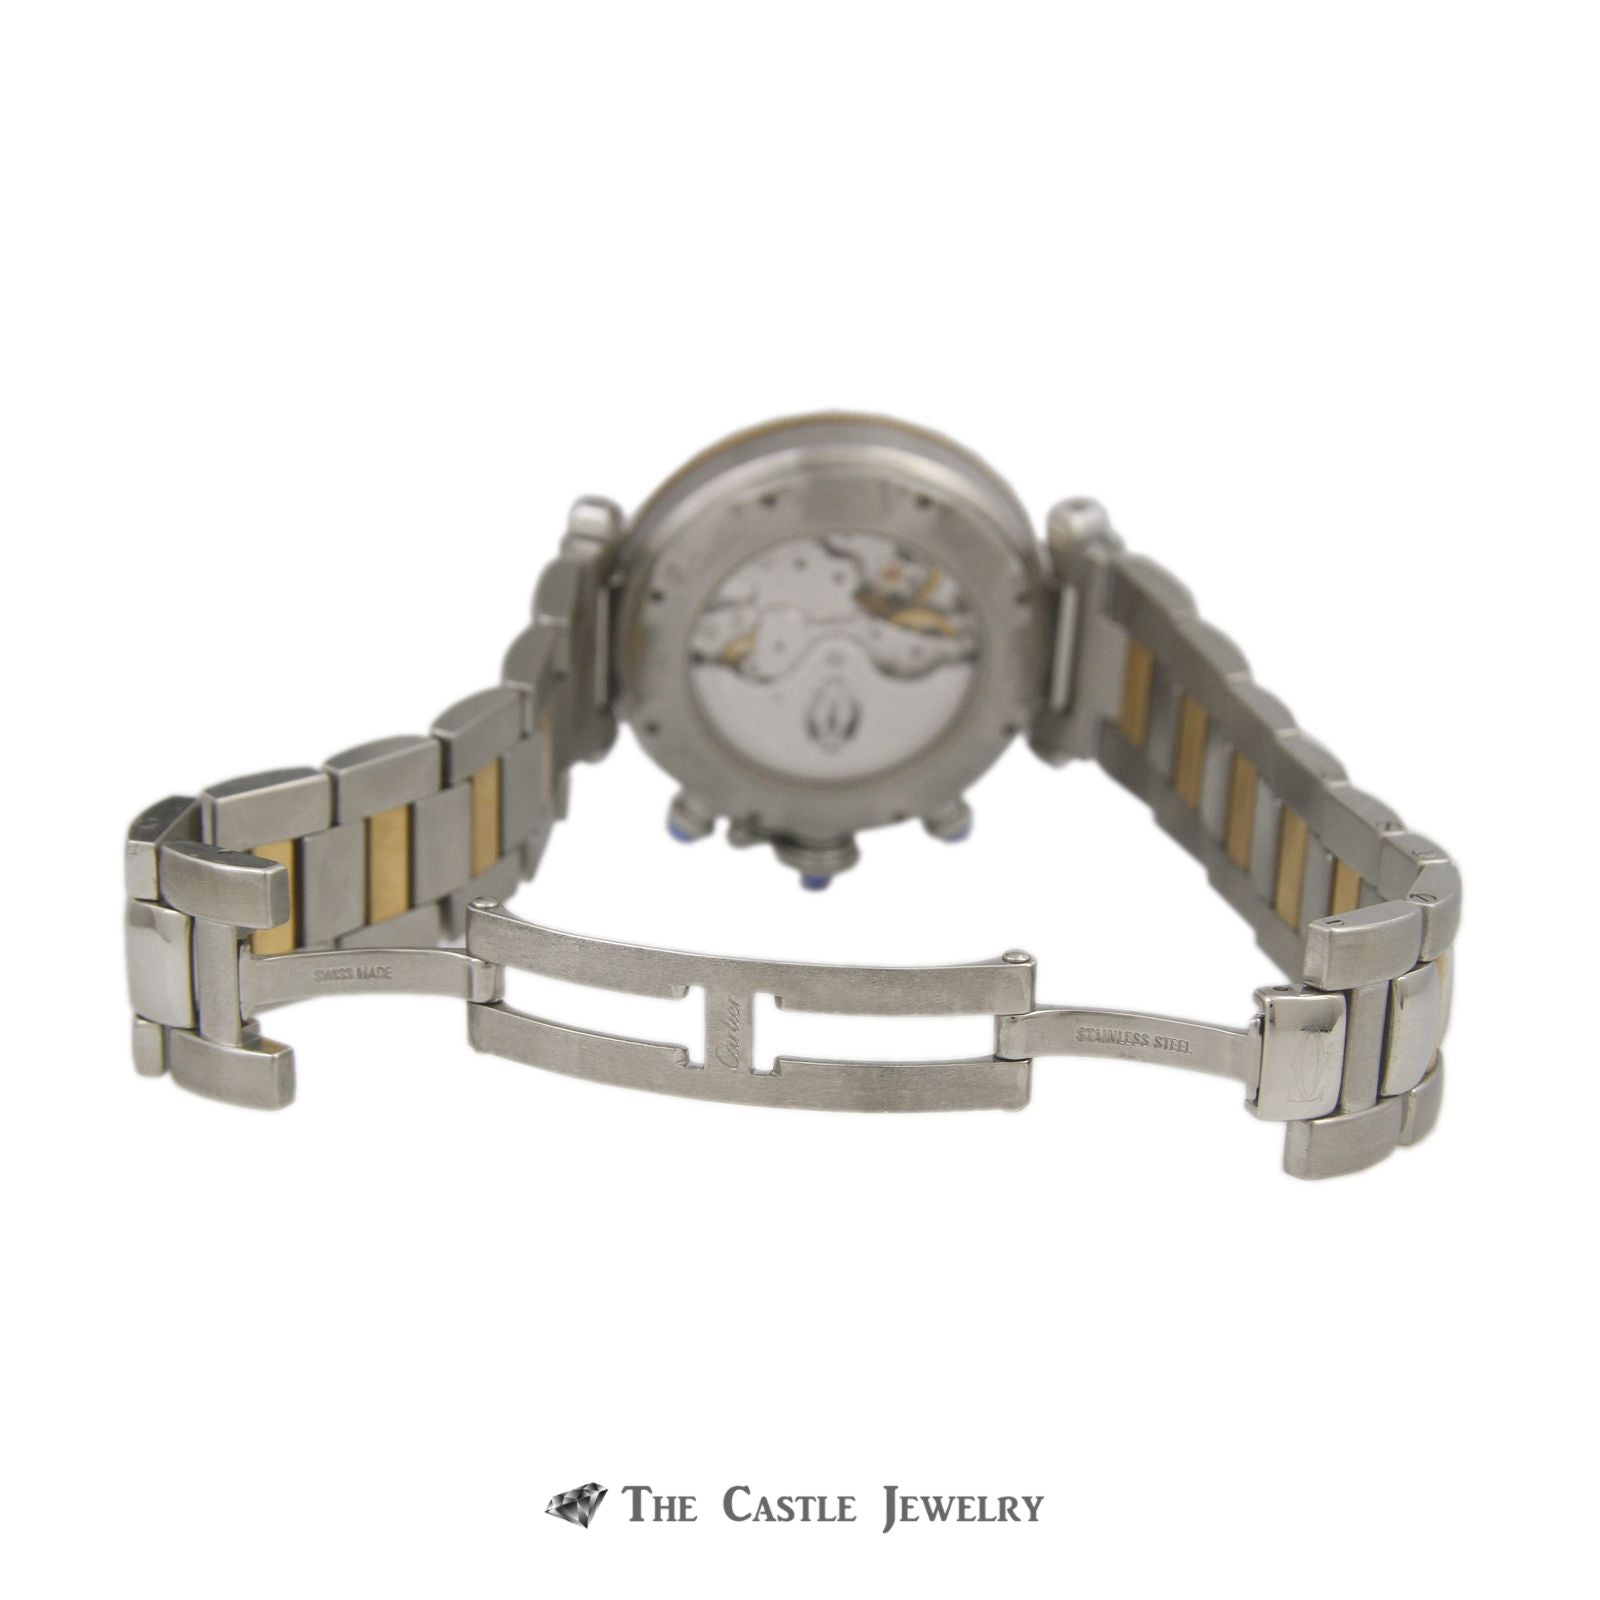 Cartier Pasha de Cartier Watch 18K & Steel 38mm Chronograph Ref. 2113-6